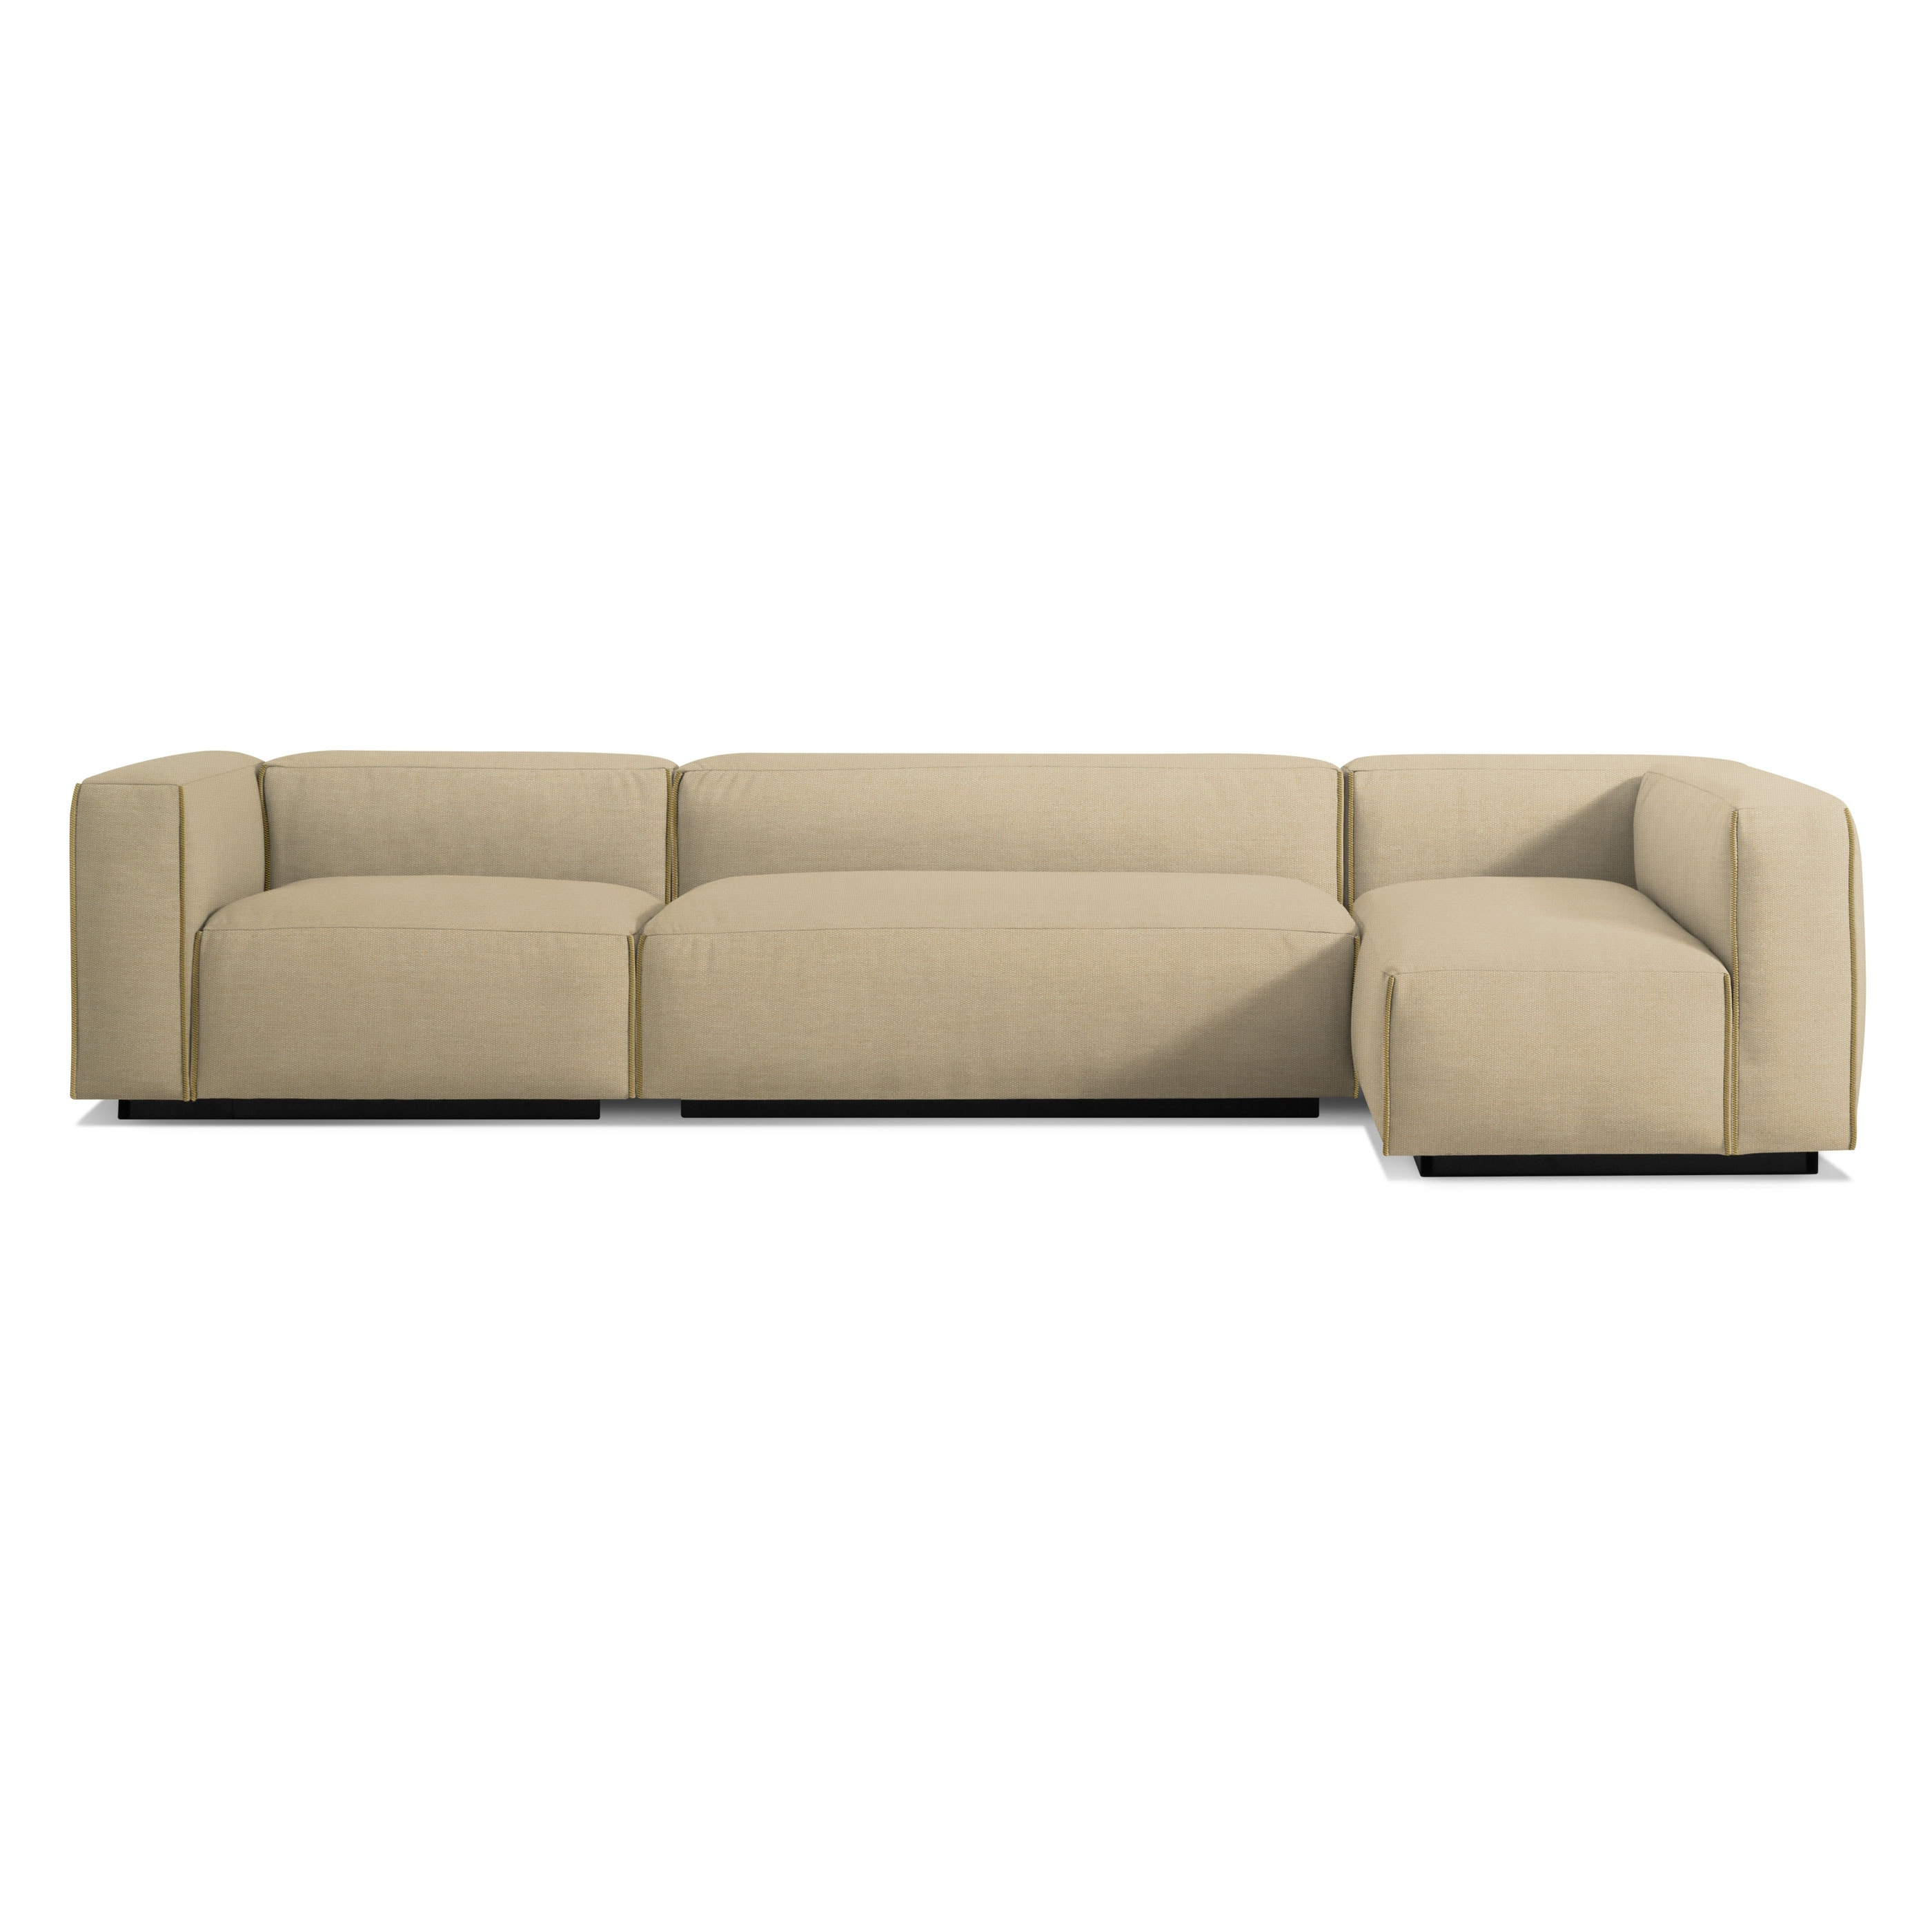 Previous Image Cleon Medium+ Sectional Sofa   Tait Ochre ...